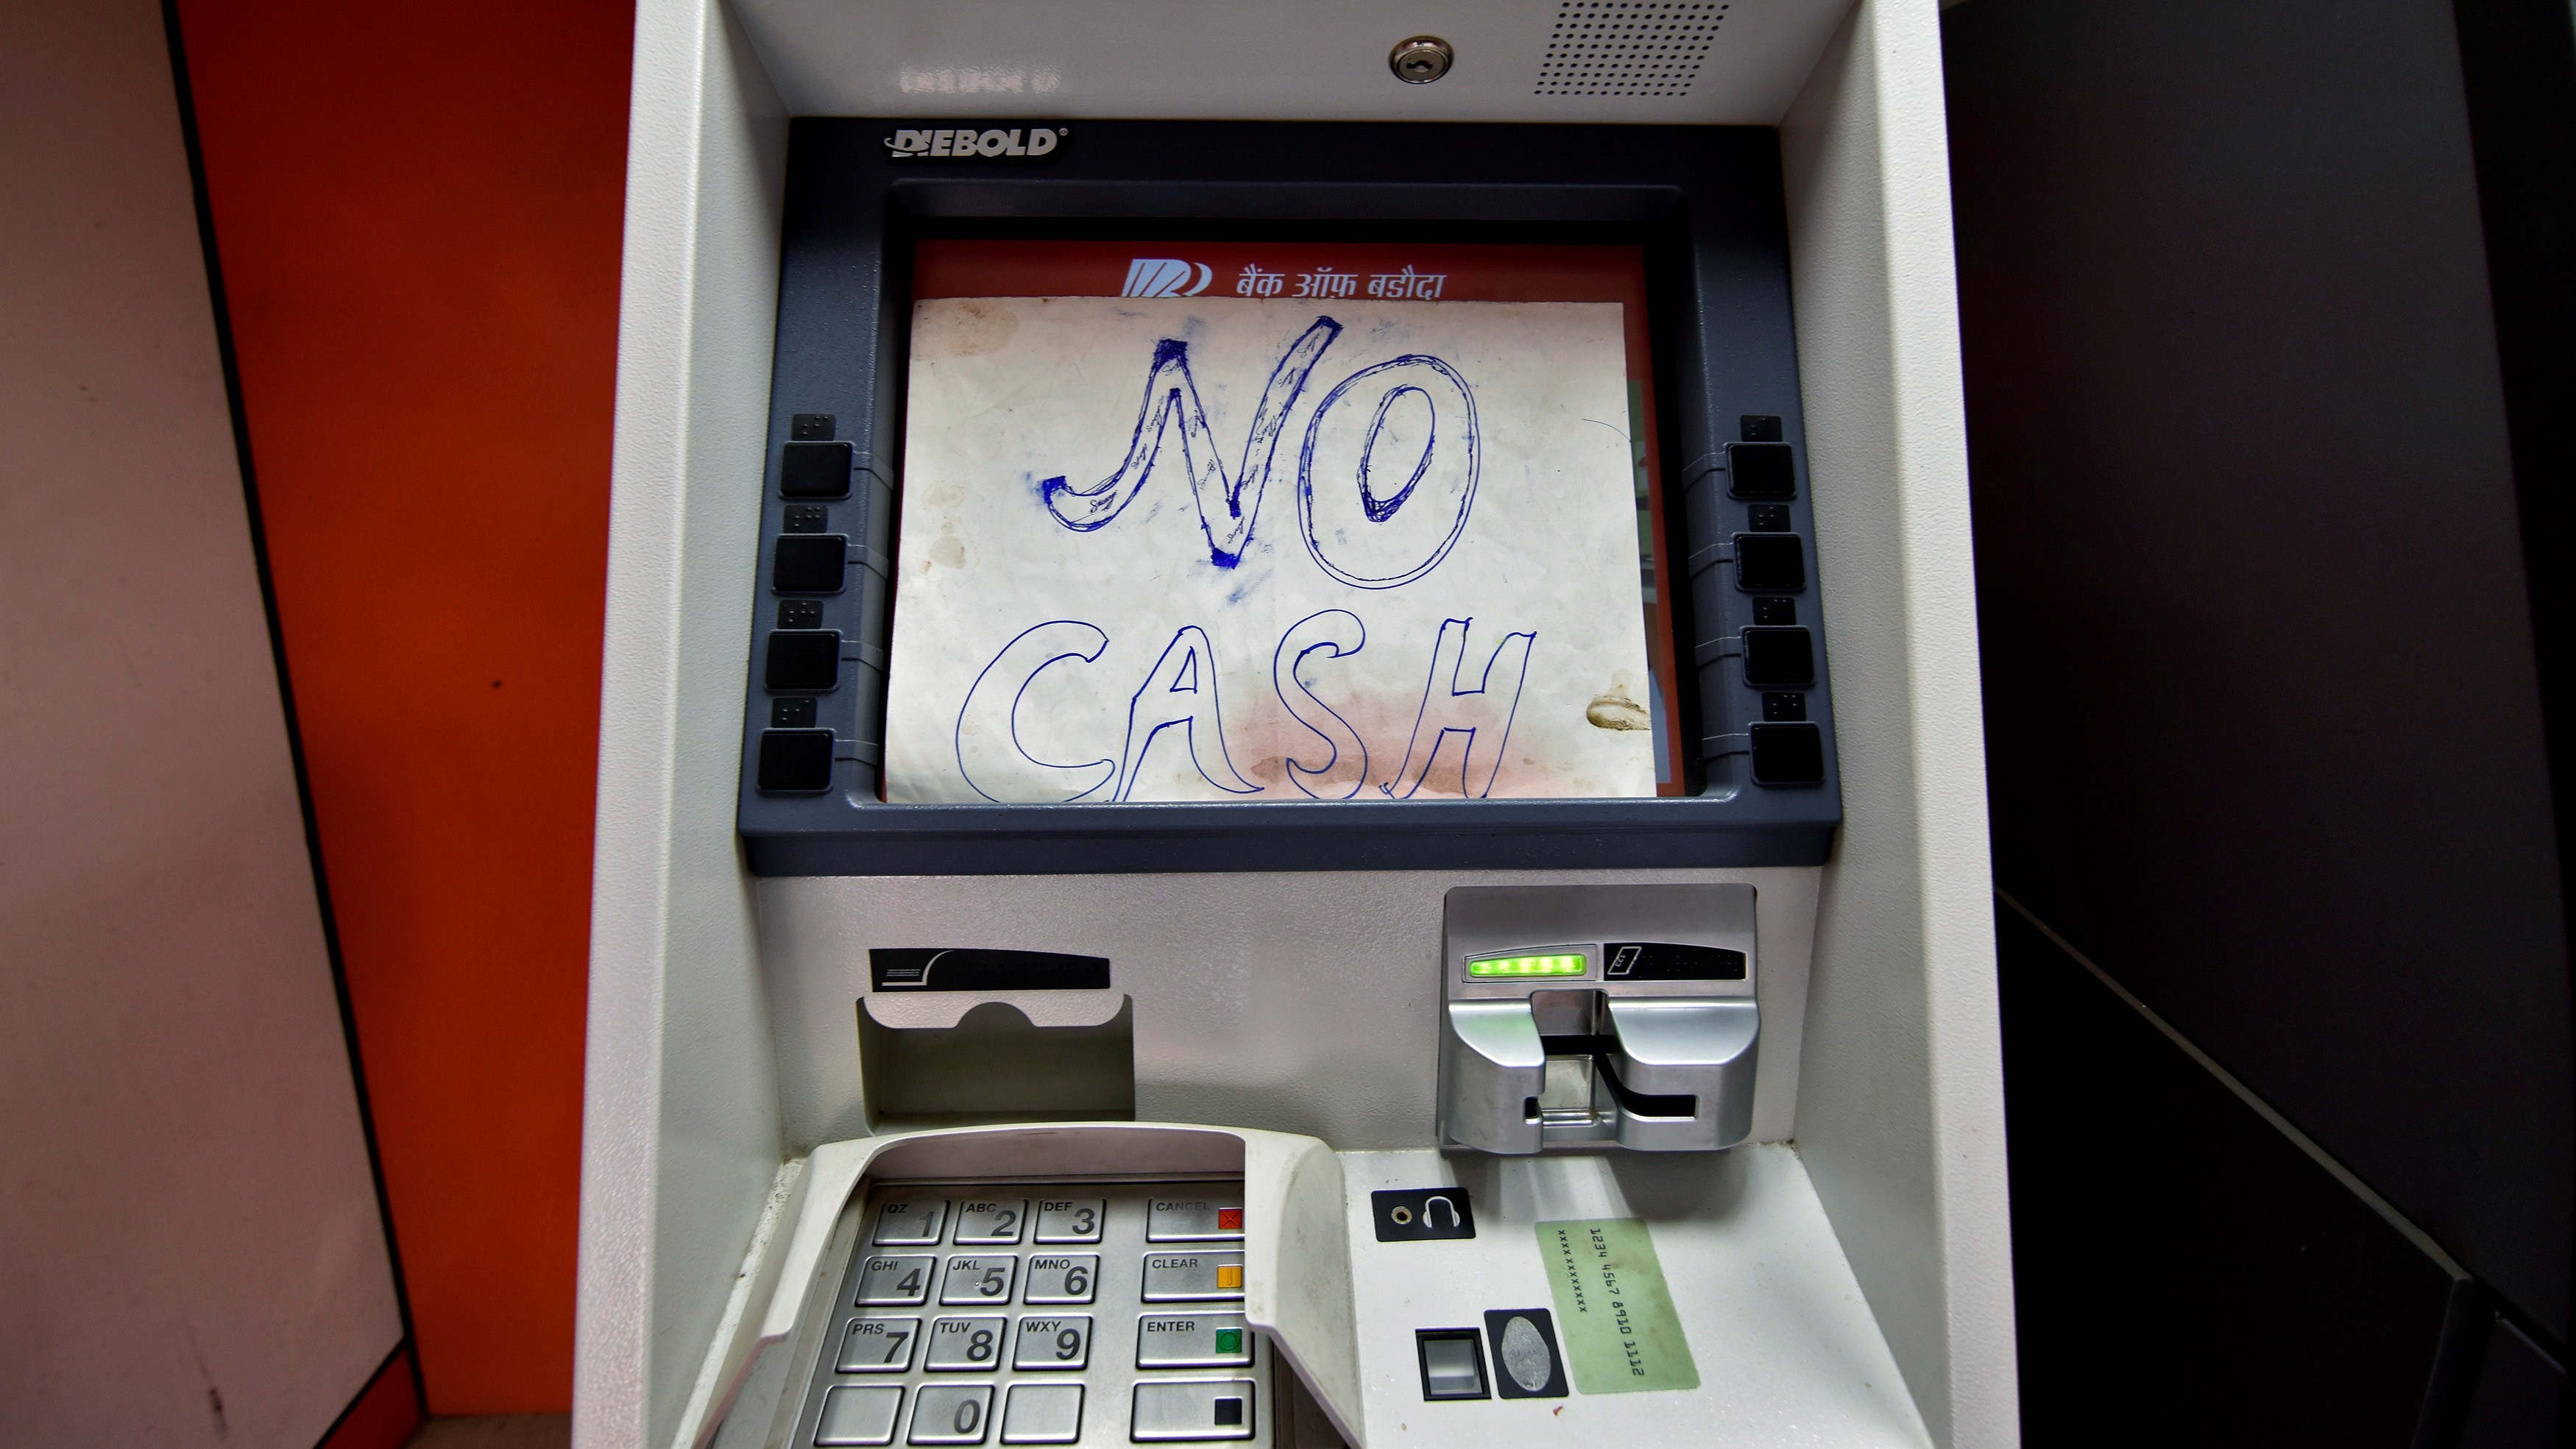 A notice is displayed on an ATM in Guwahati